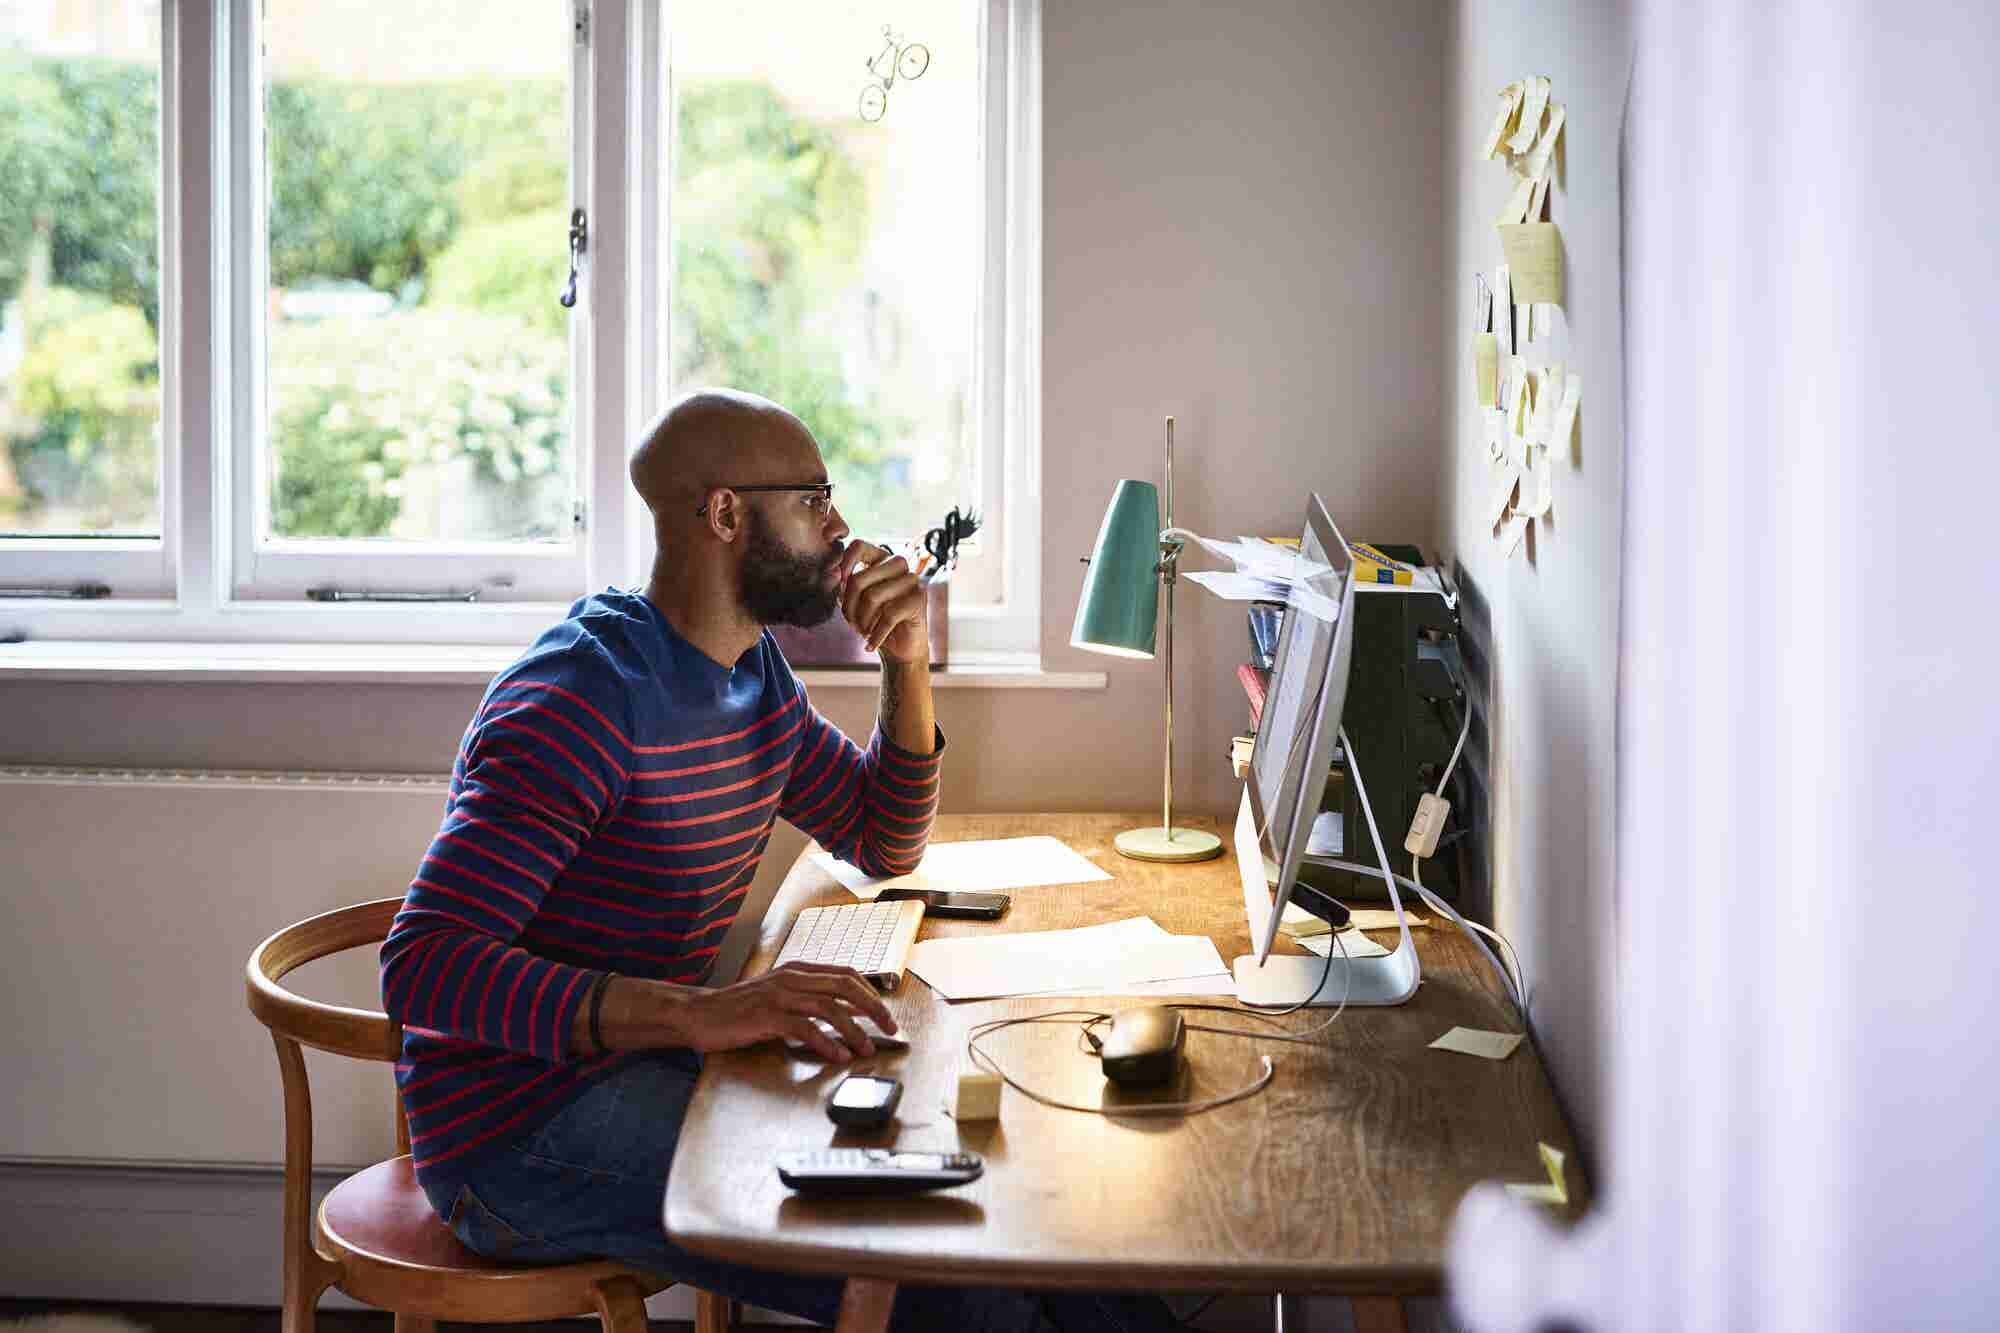 10 Healthy Habits for People Who Work Remotely